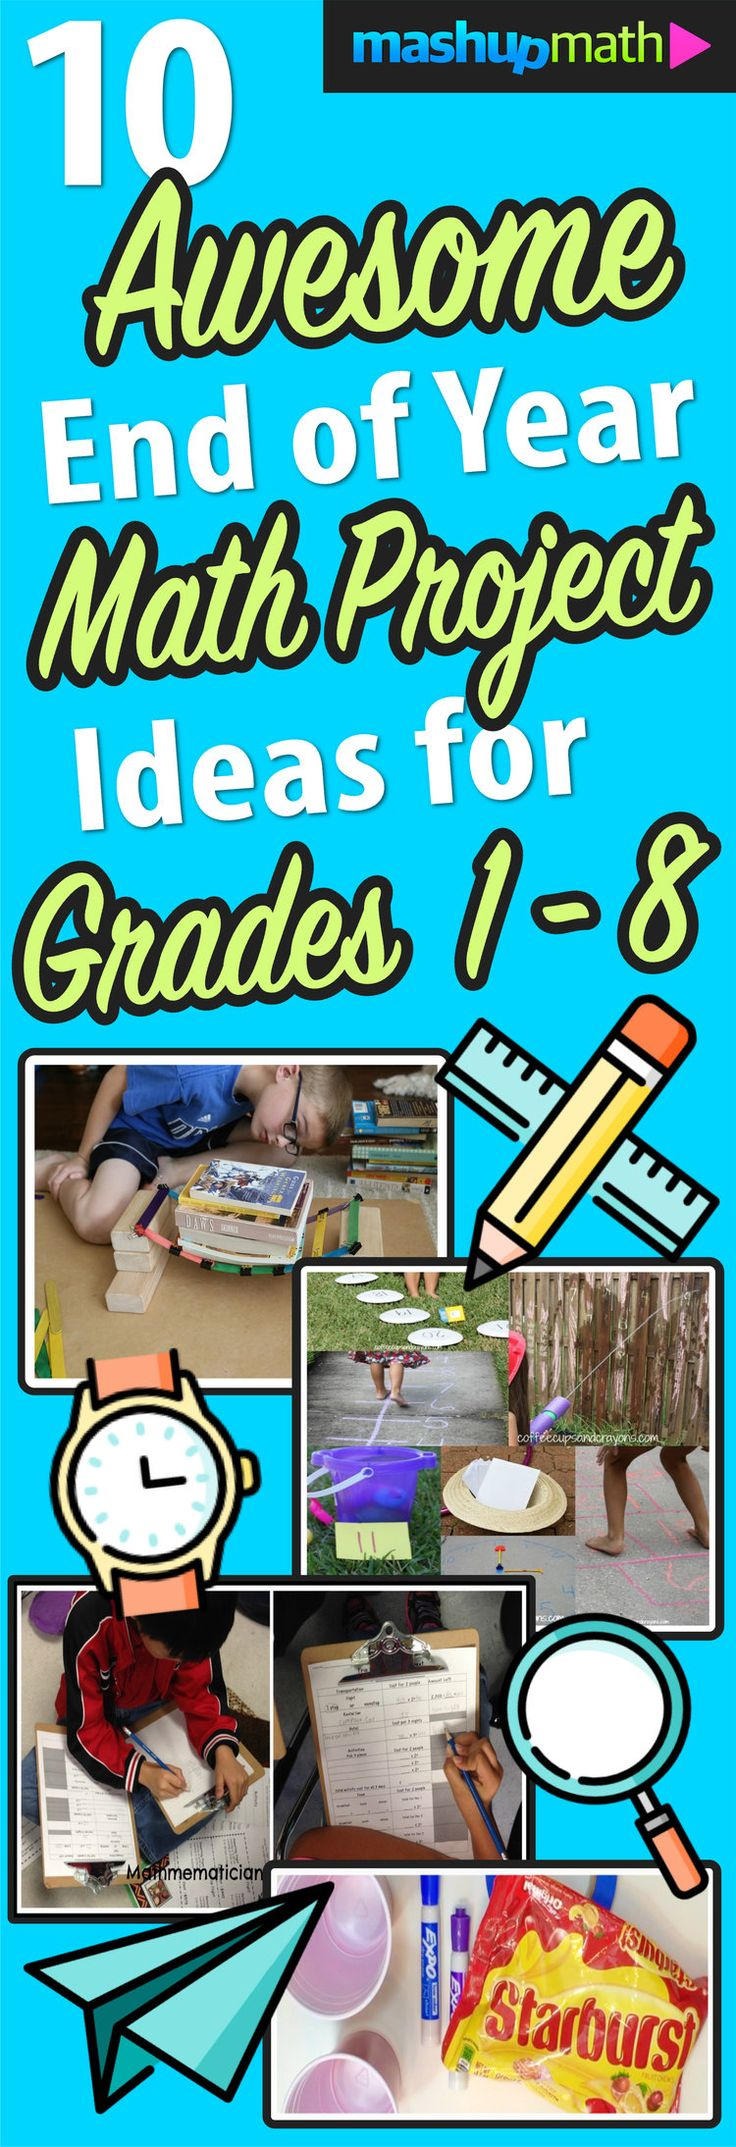 67 best End of year images on Pinterest | End of school ideas ...